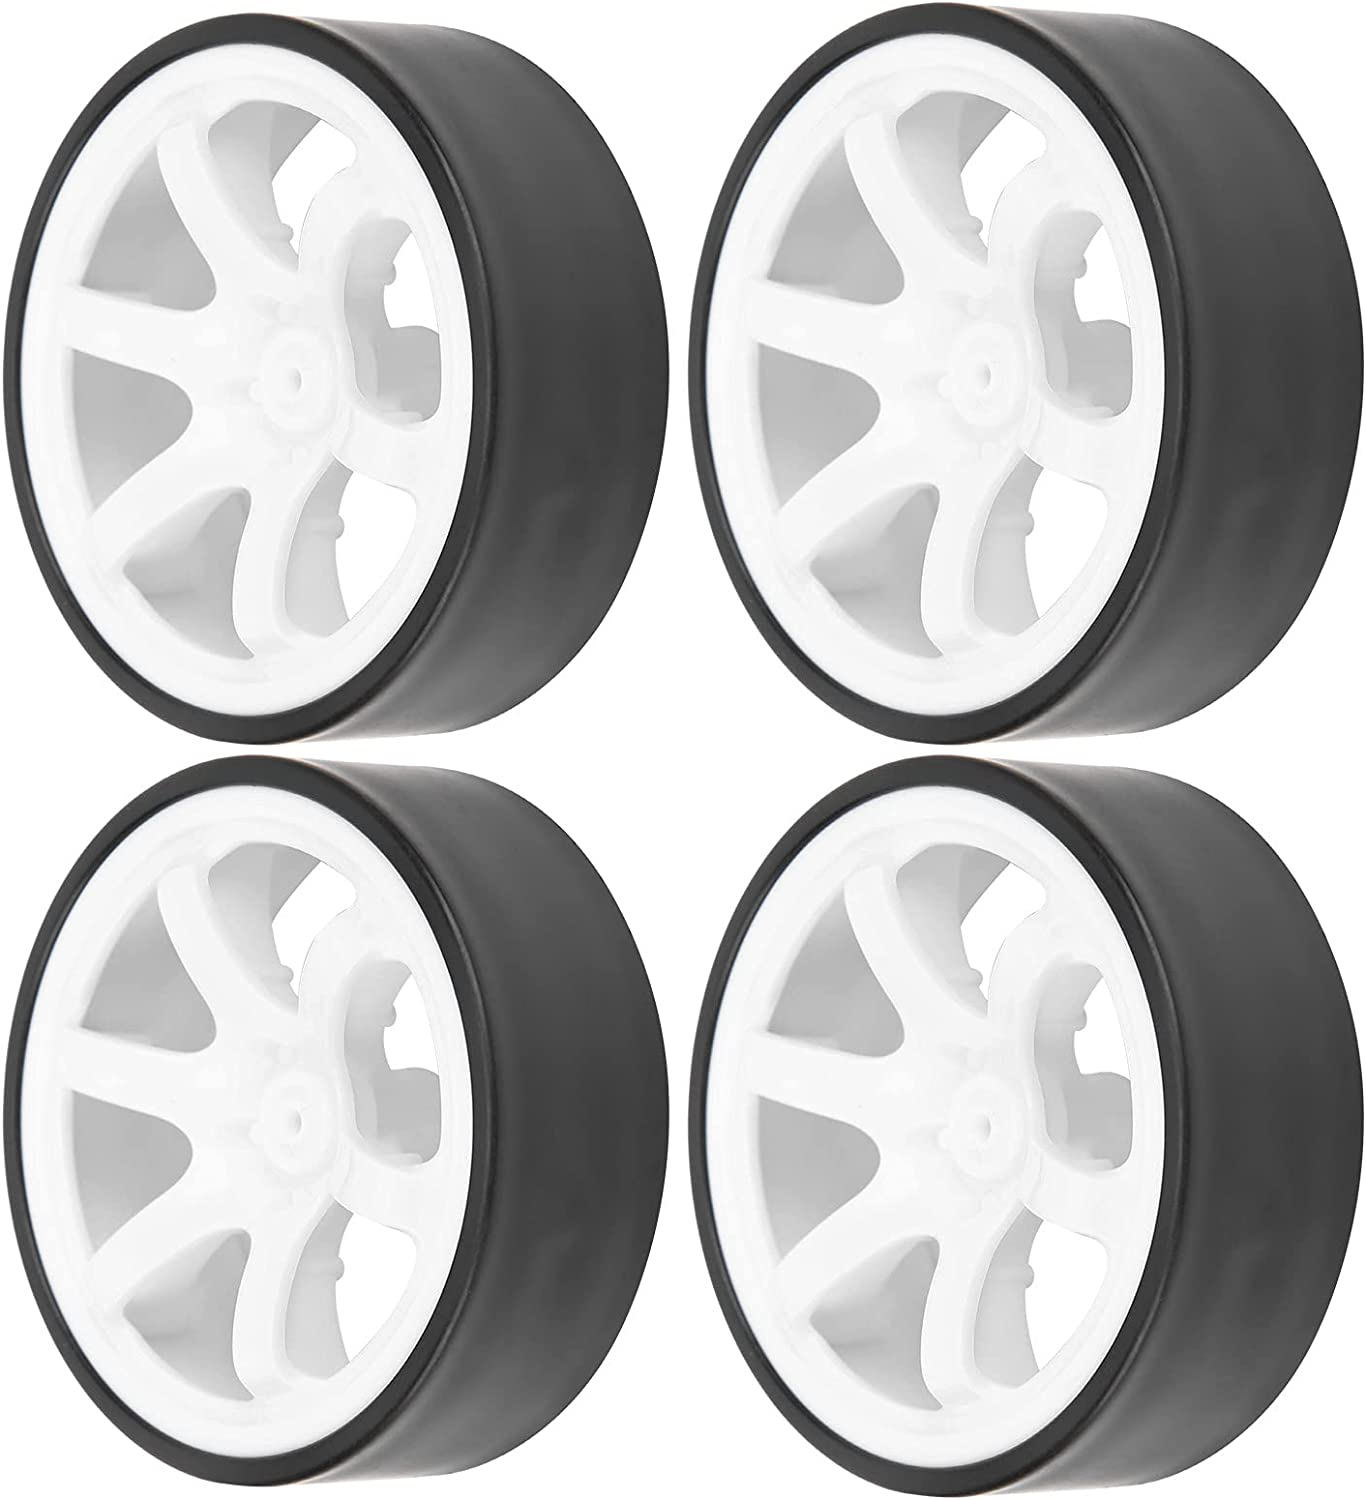 SALUTUY RC Wheel Rims Car Drift and Recommendation Tires Under blast sales Install Di to Easy